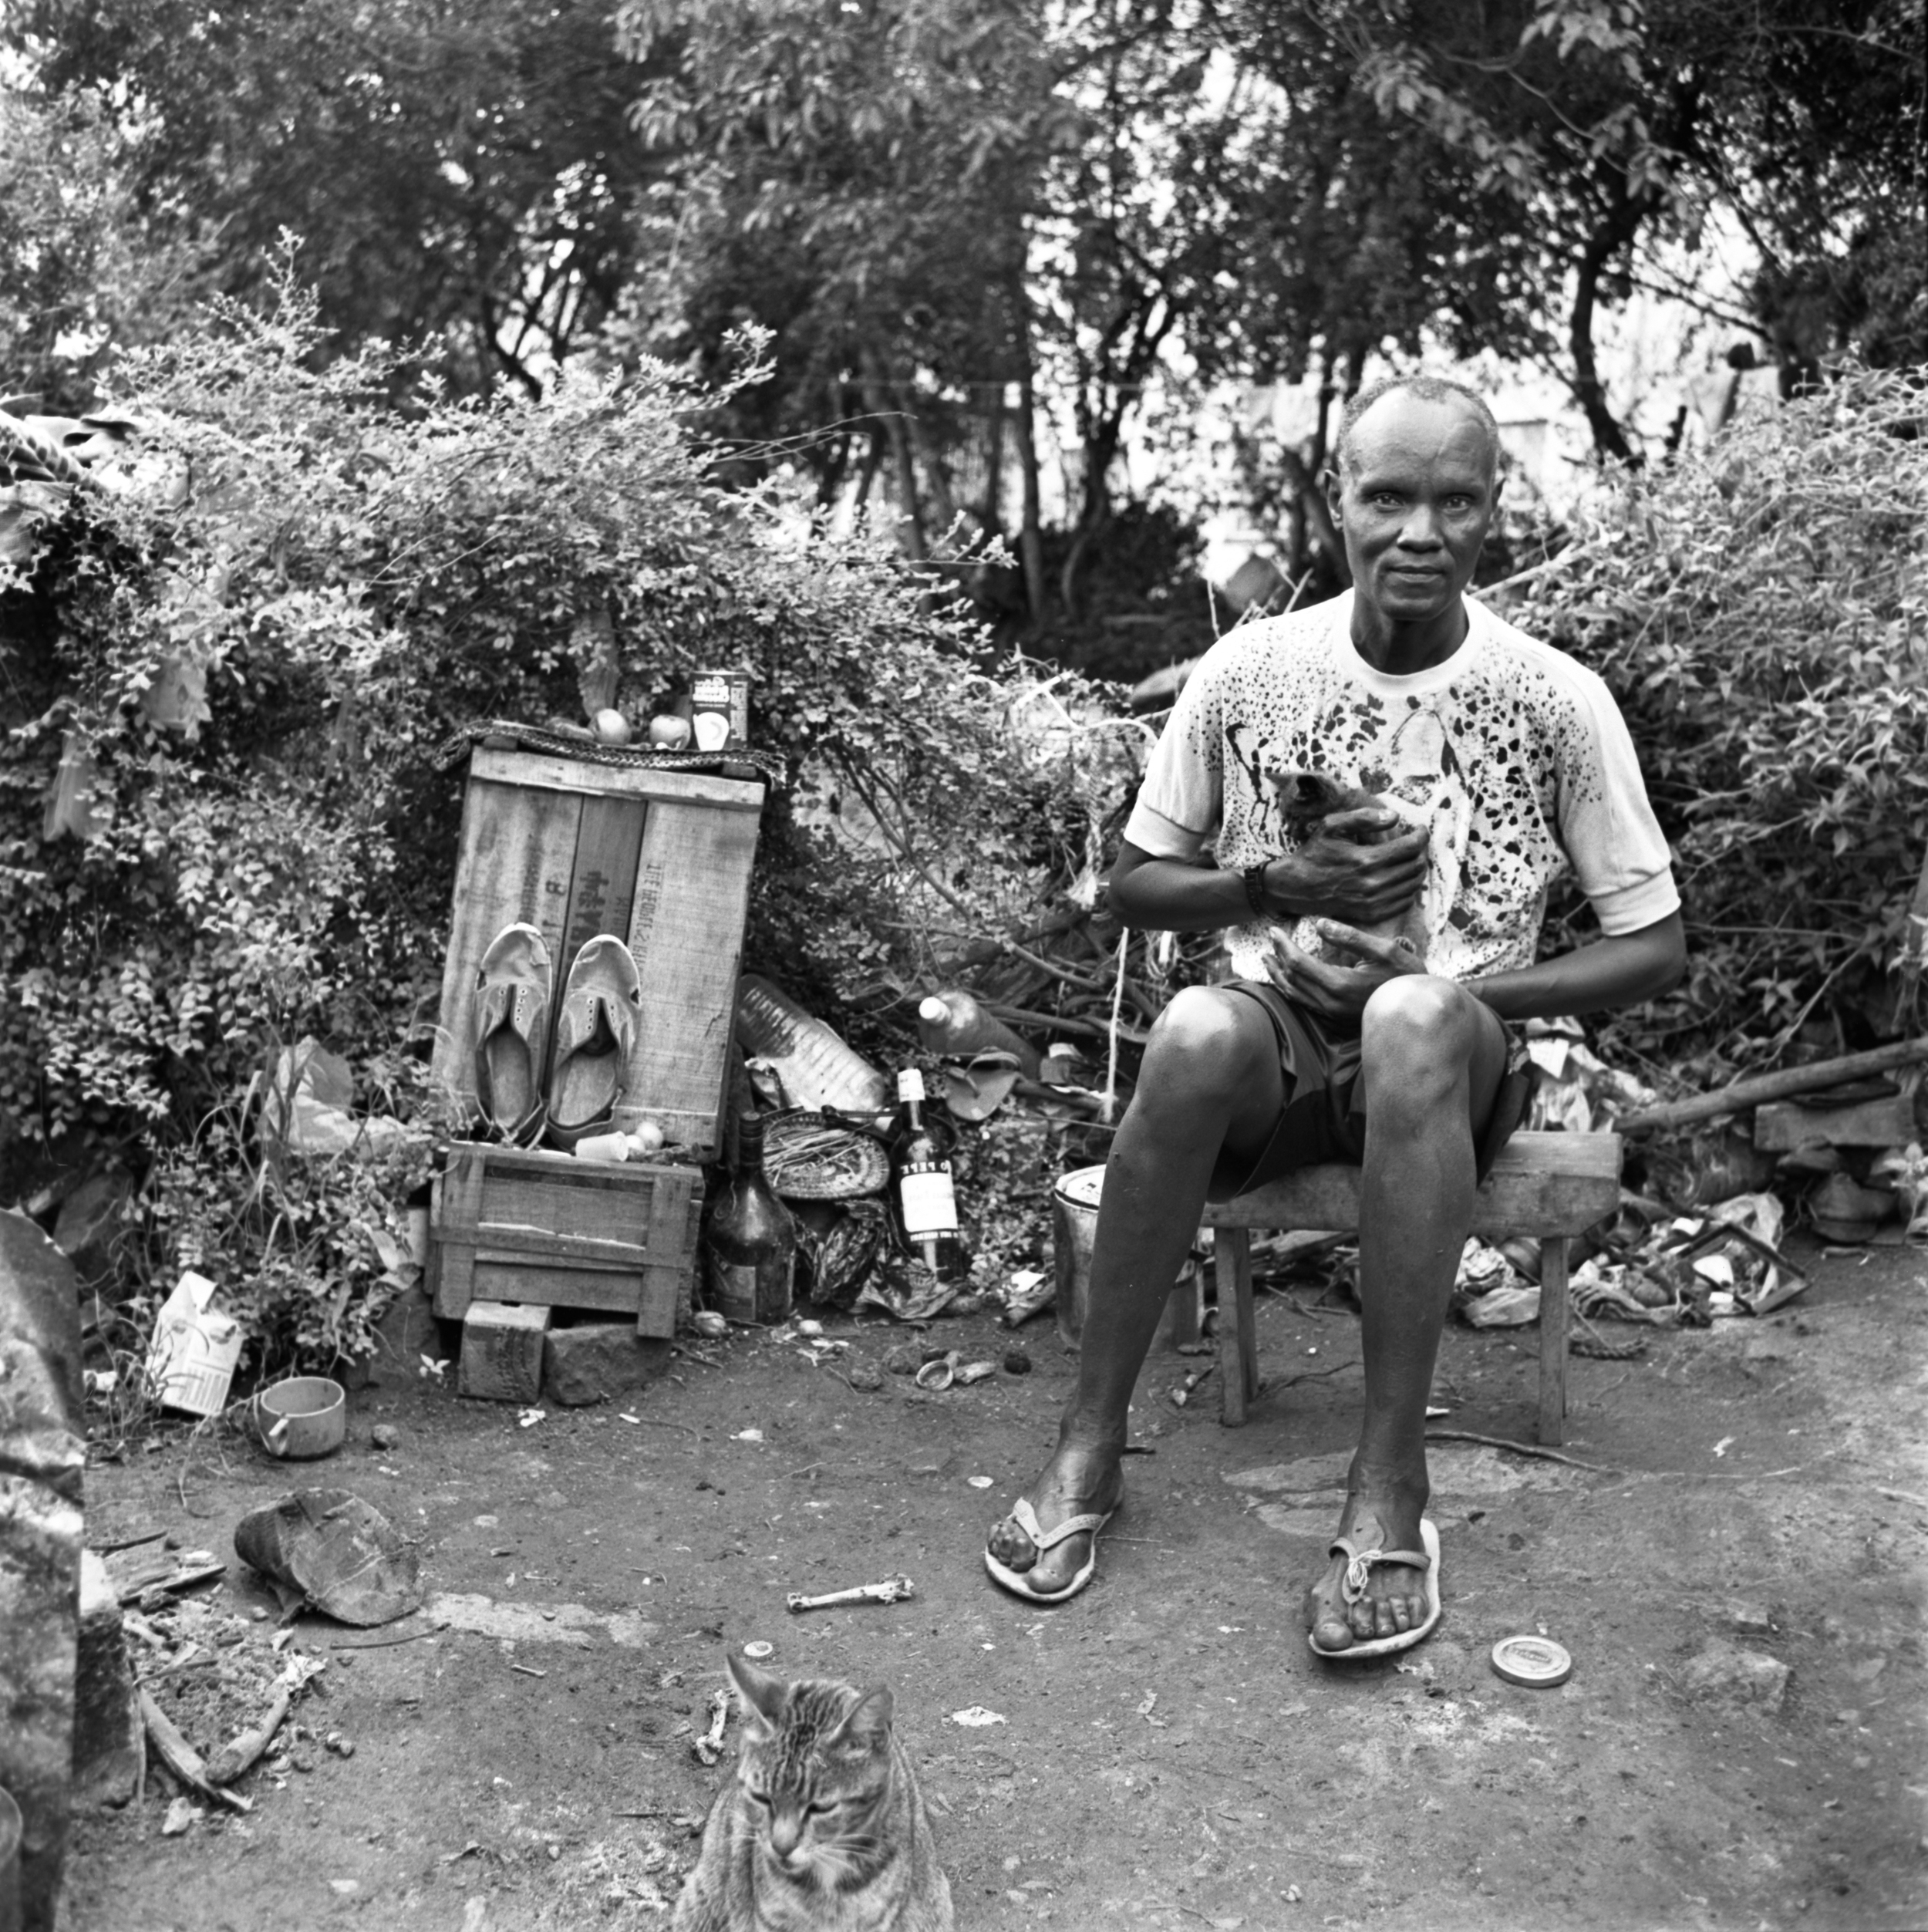 Chege, a squatter in Nairobi